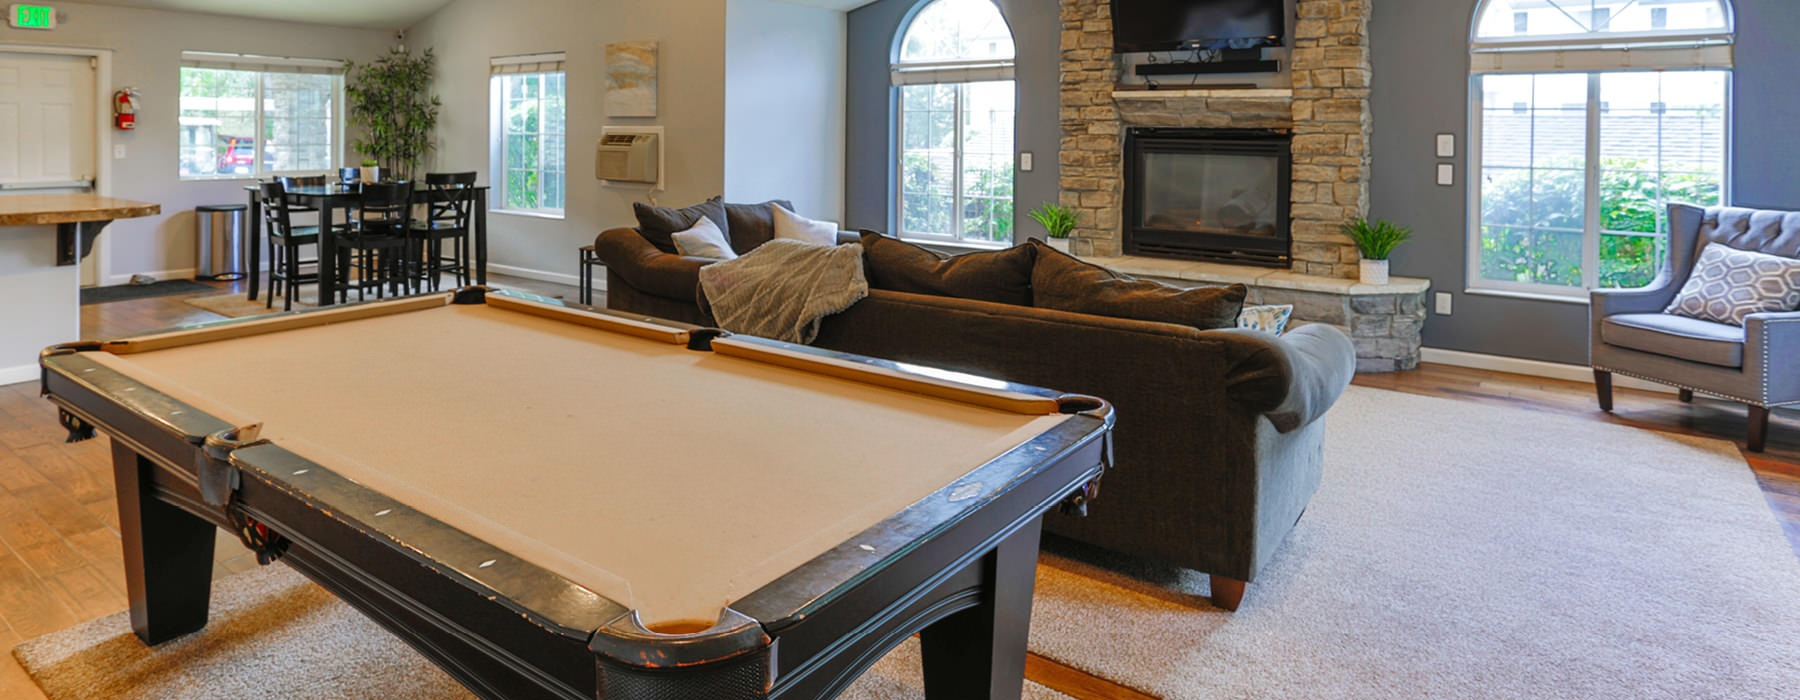 spacious clubhouse with pool table